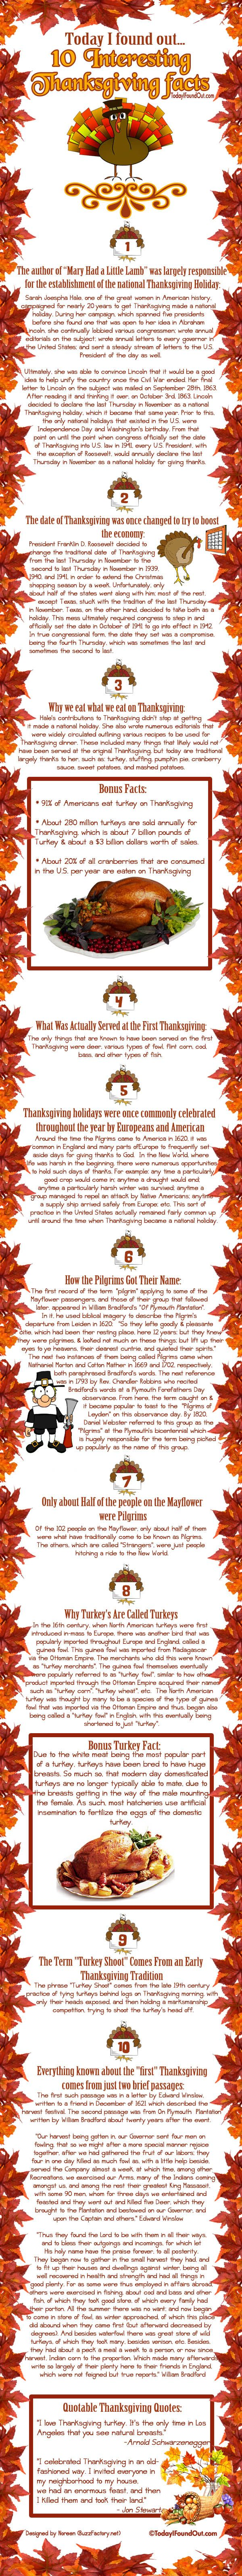 Thanksgiving facts and trivia